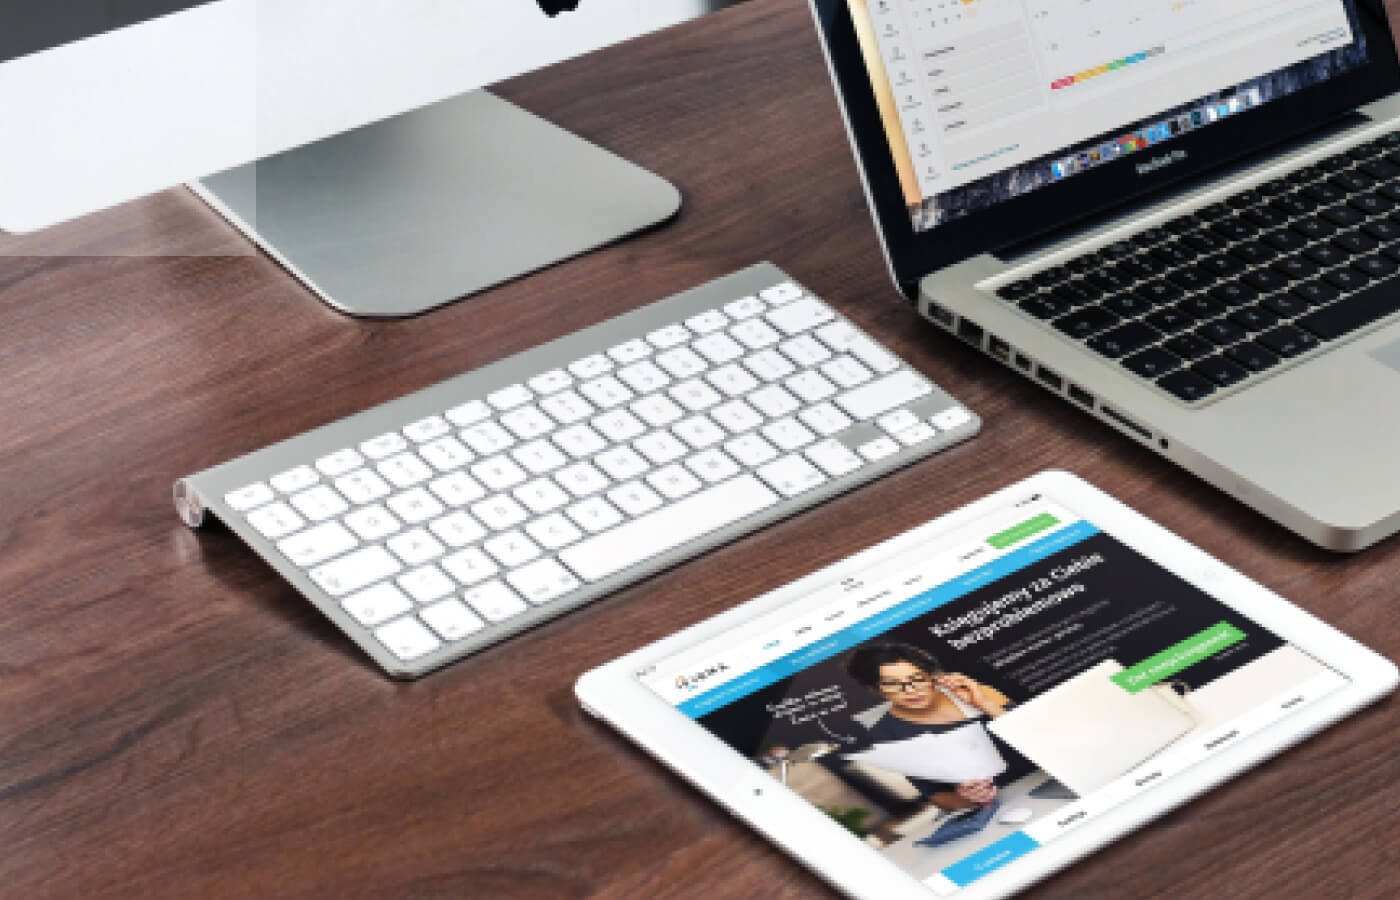 Mithi Software releases Baya 3, the secure, extendable and responsive web client platform for the SkyConnect application suite